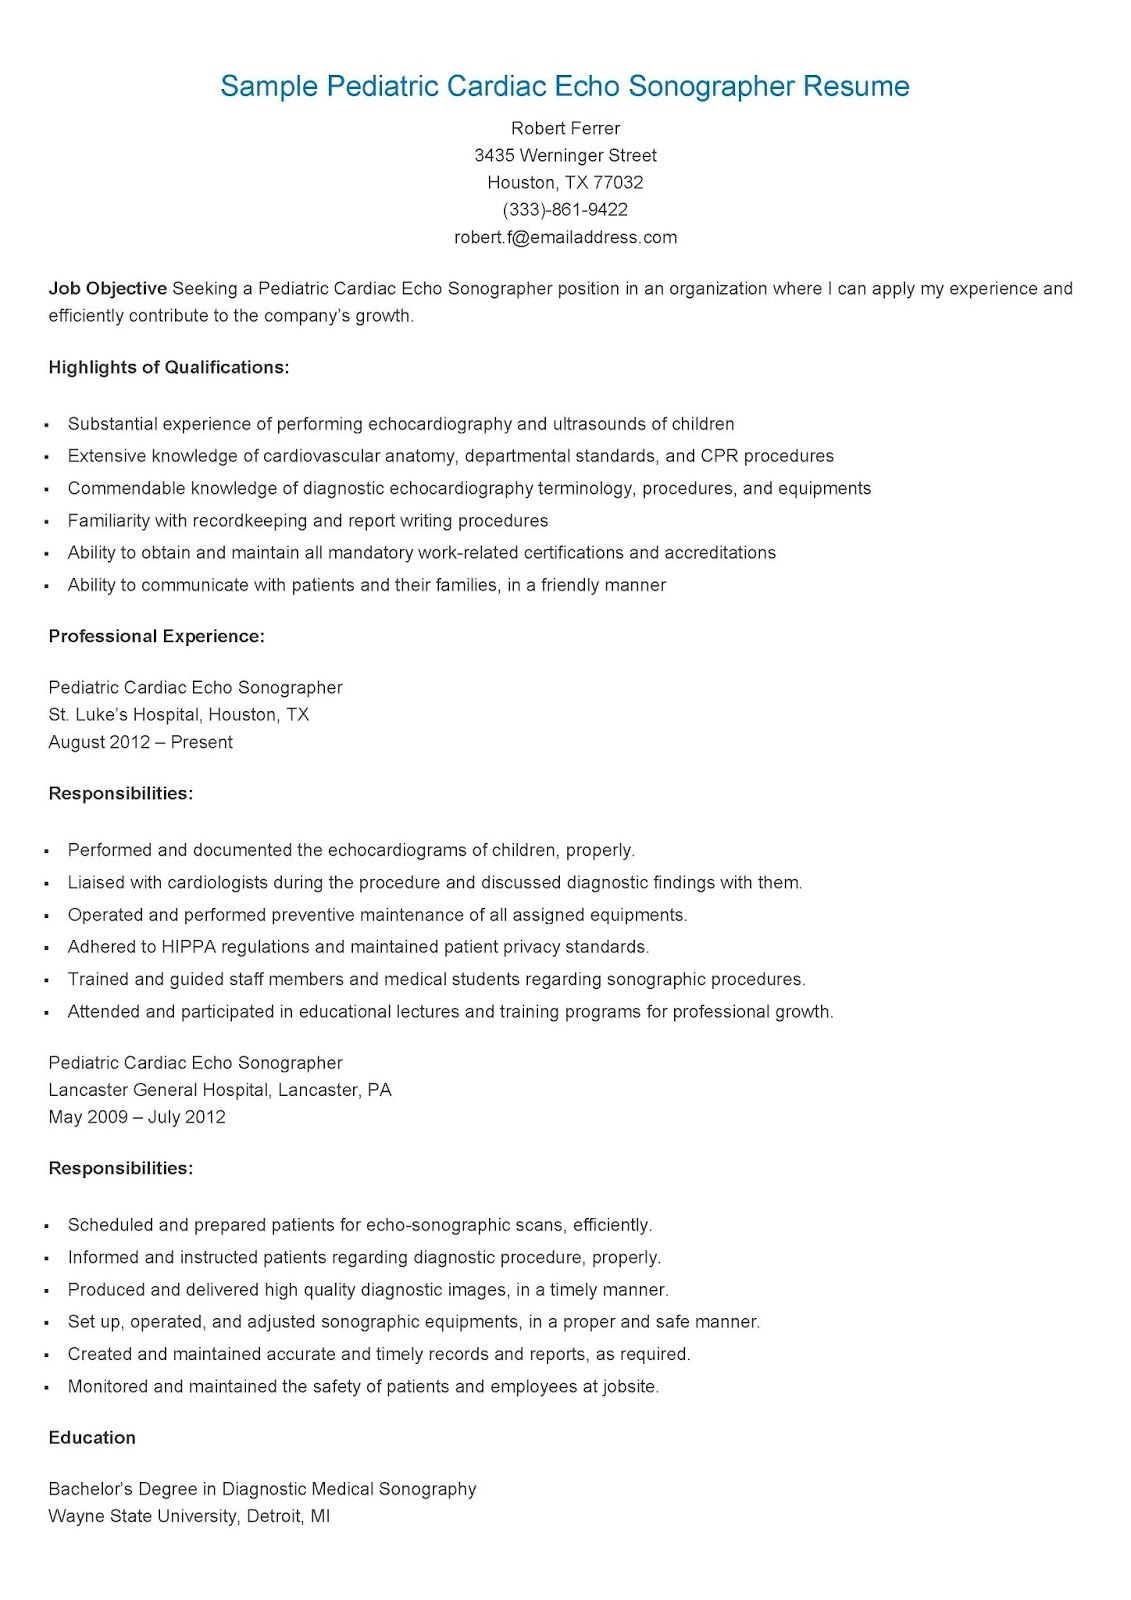 sample pediatric cardiac echo sonographer resume